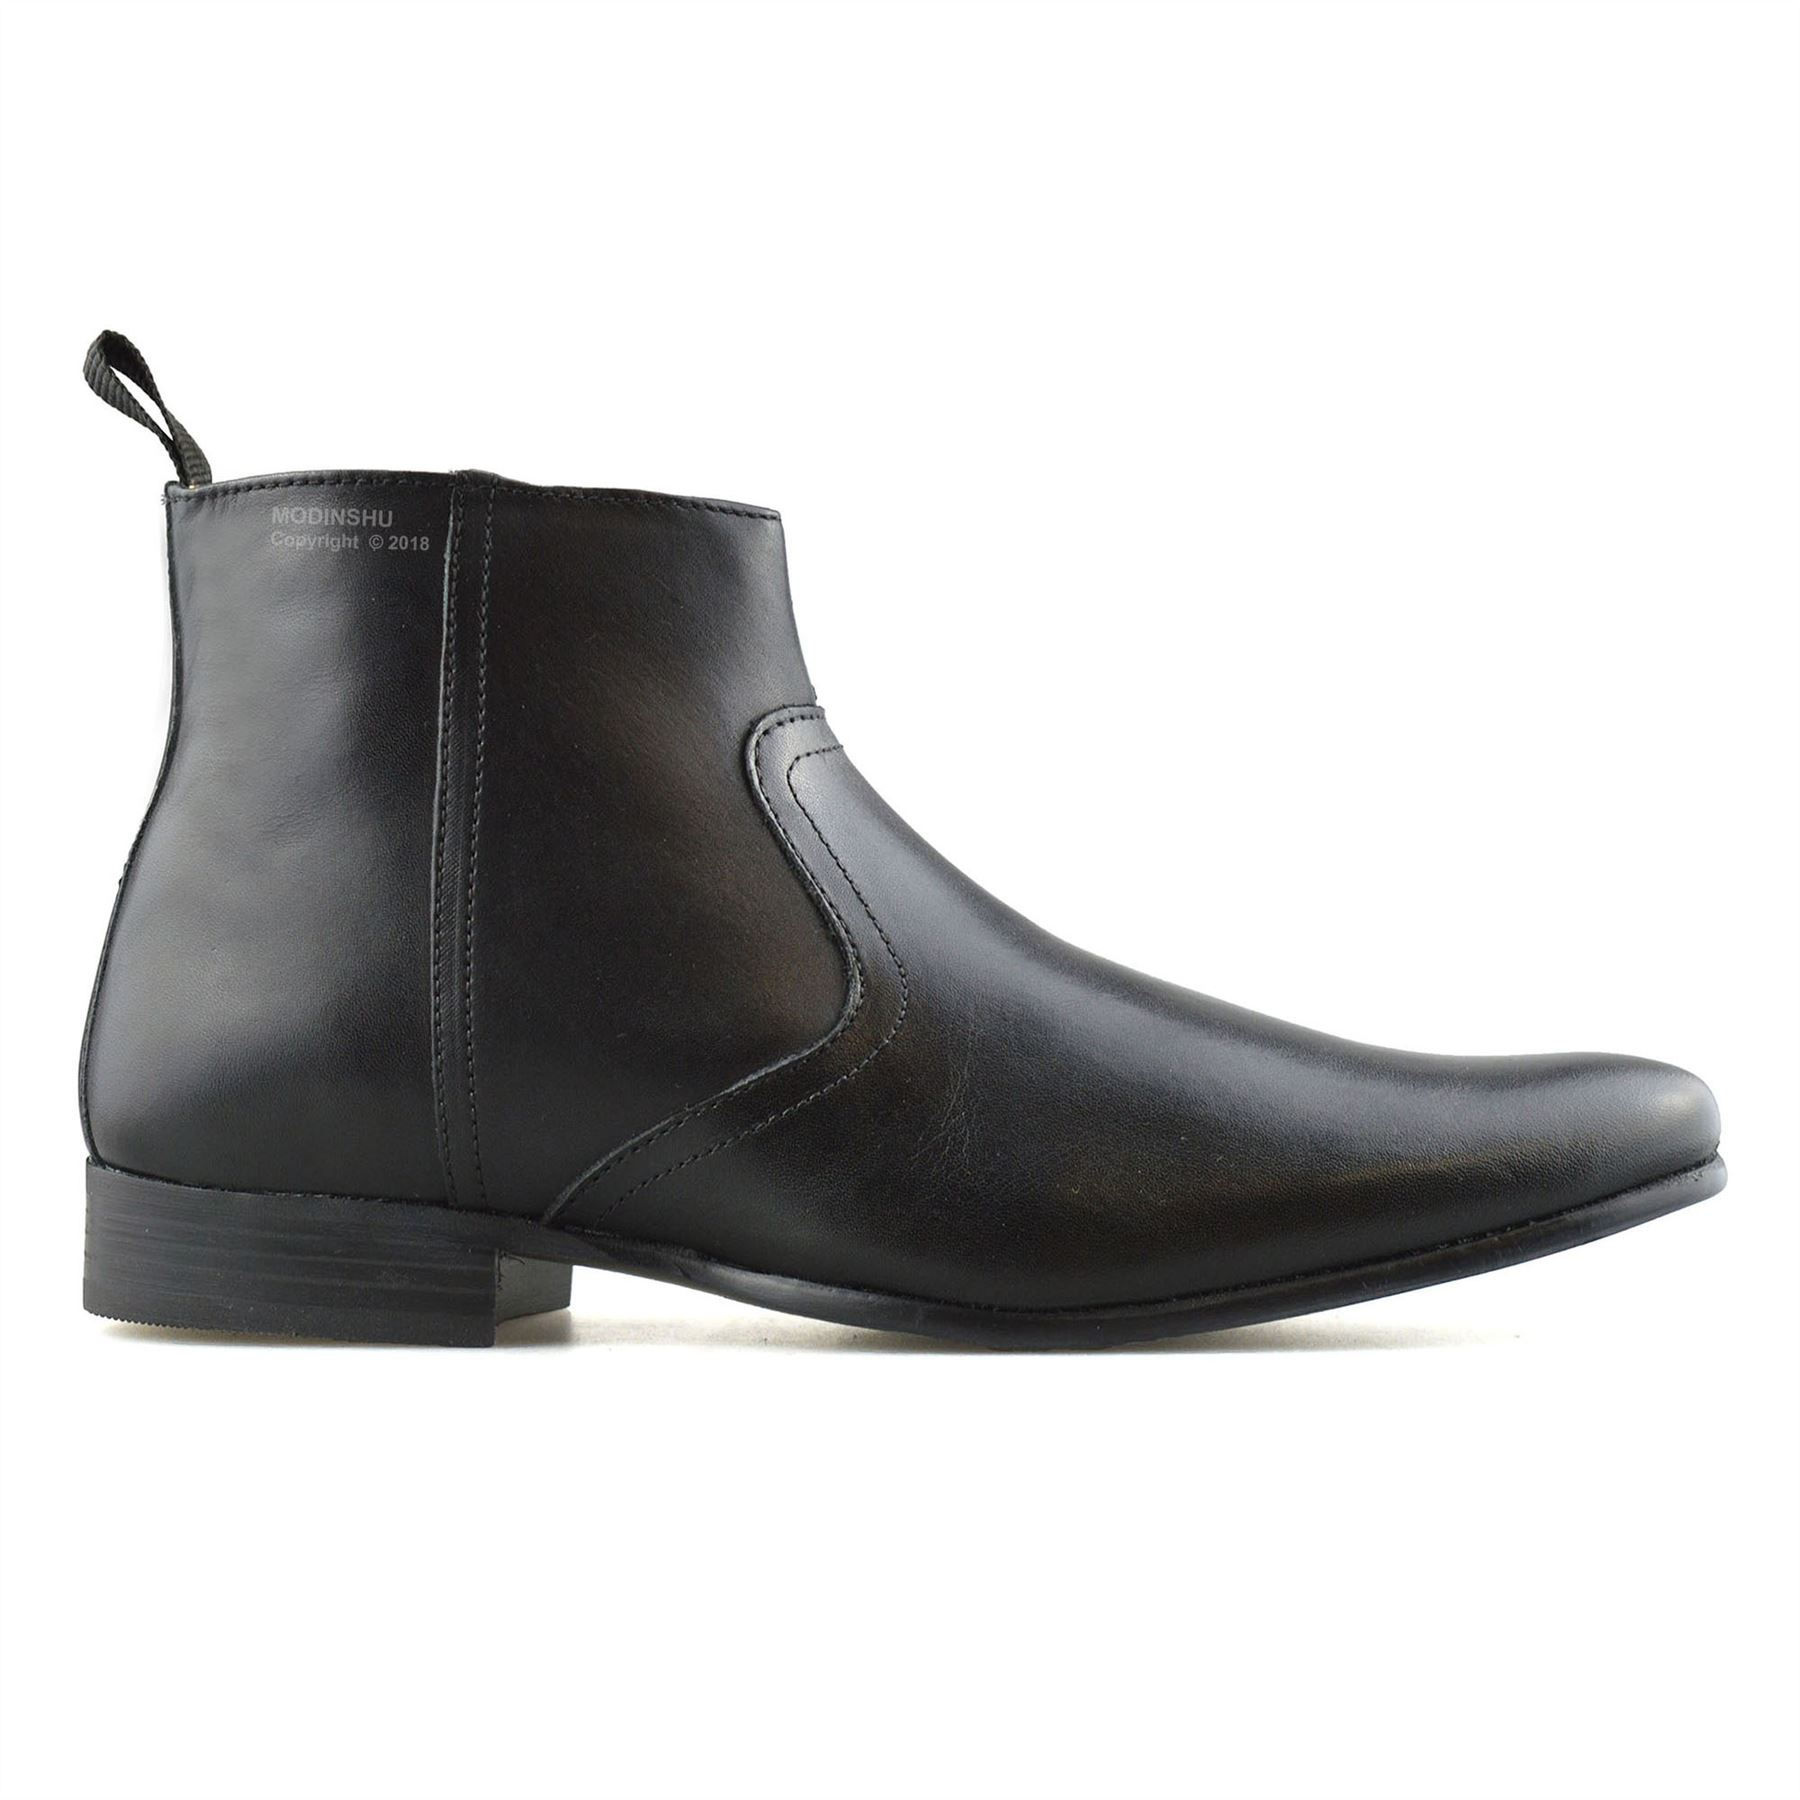 Mens-New-Leather-Zip-Up-Smart-Formal-Chelsea-Dealer-Work-Ankle-Boots-Shoes-Size thumbnail 11